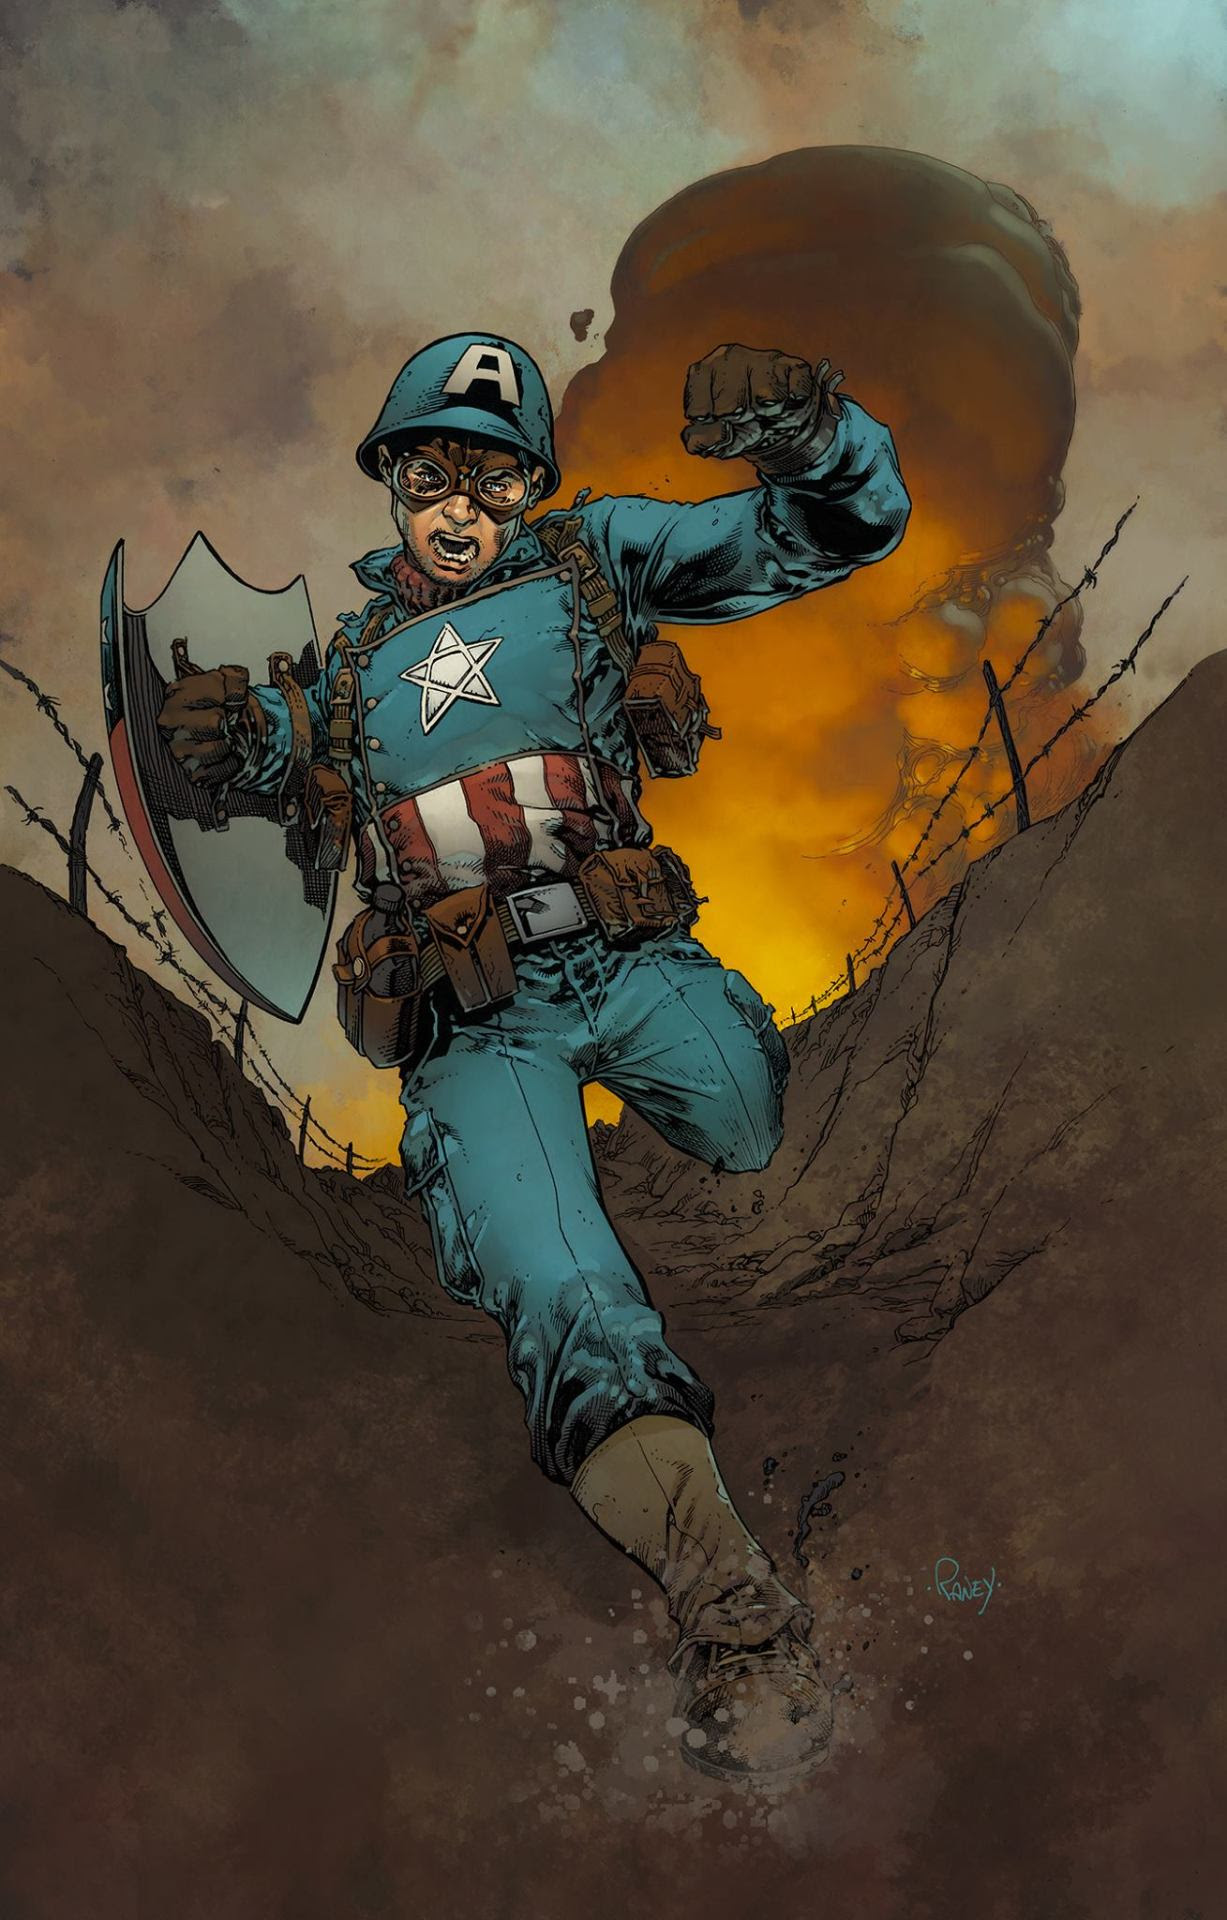 Captain America by Tom Raney, colours by Mike Spicer